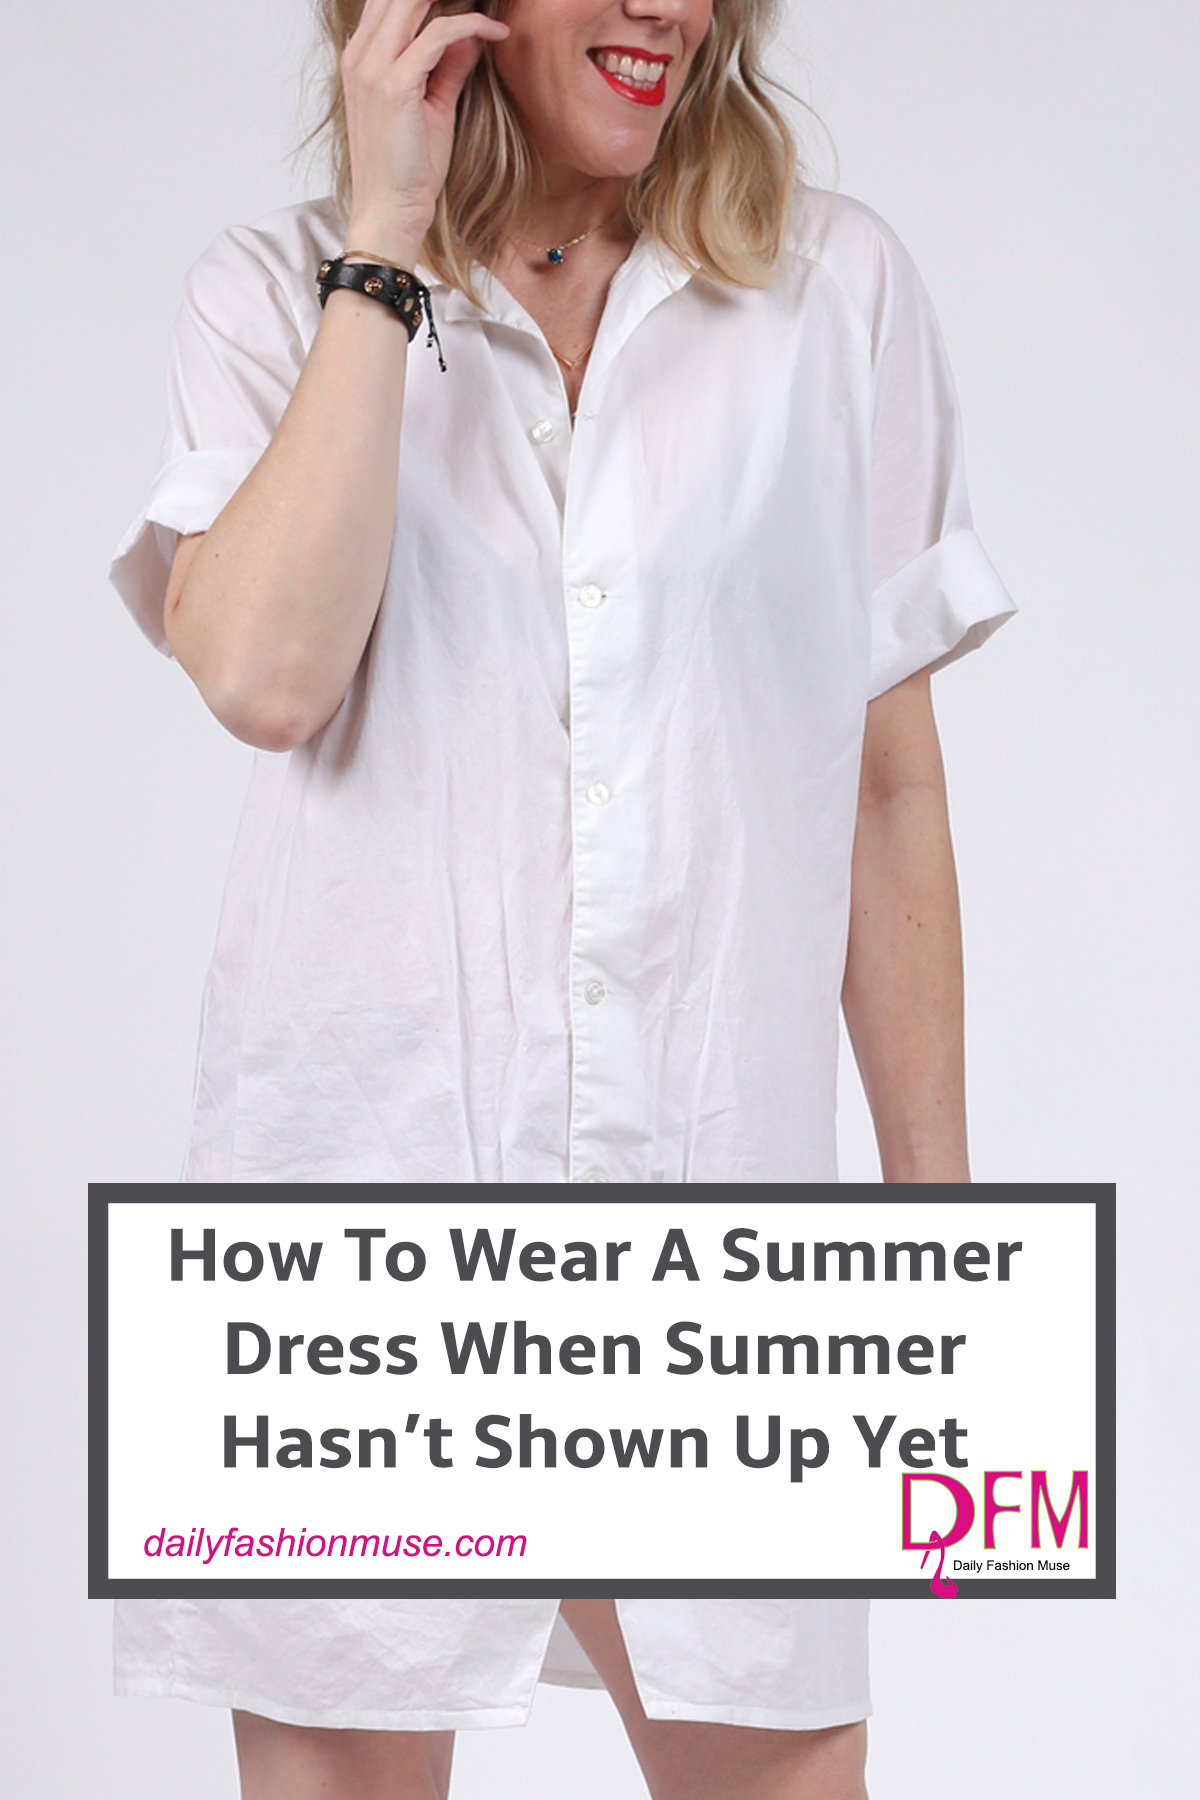 If you are looking for a way to wear your summer dress before summer hits then click through to see how all the fashionistas are wearing their summer dress. Daily Fashion Muse